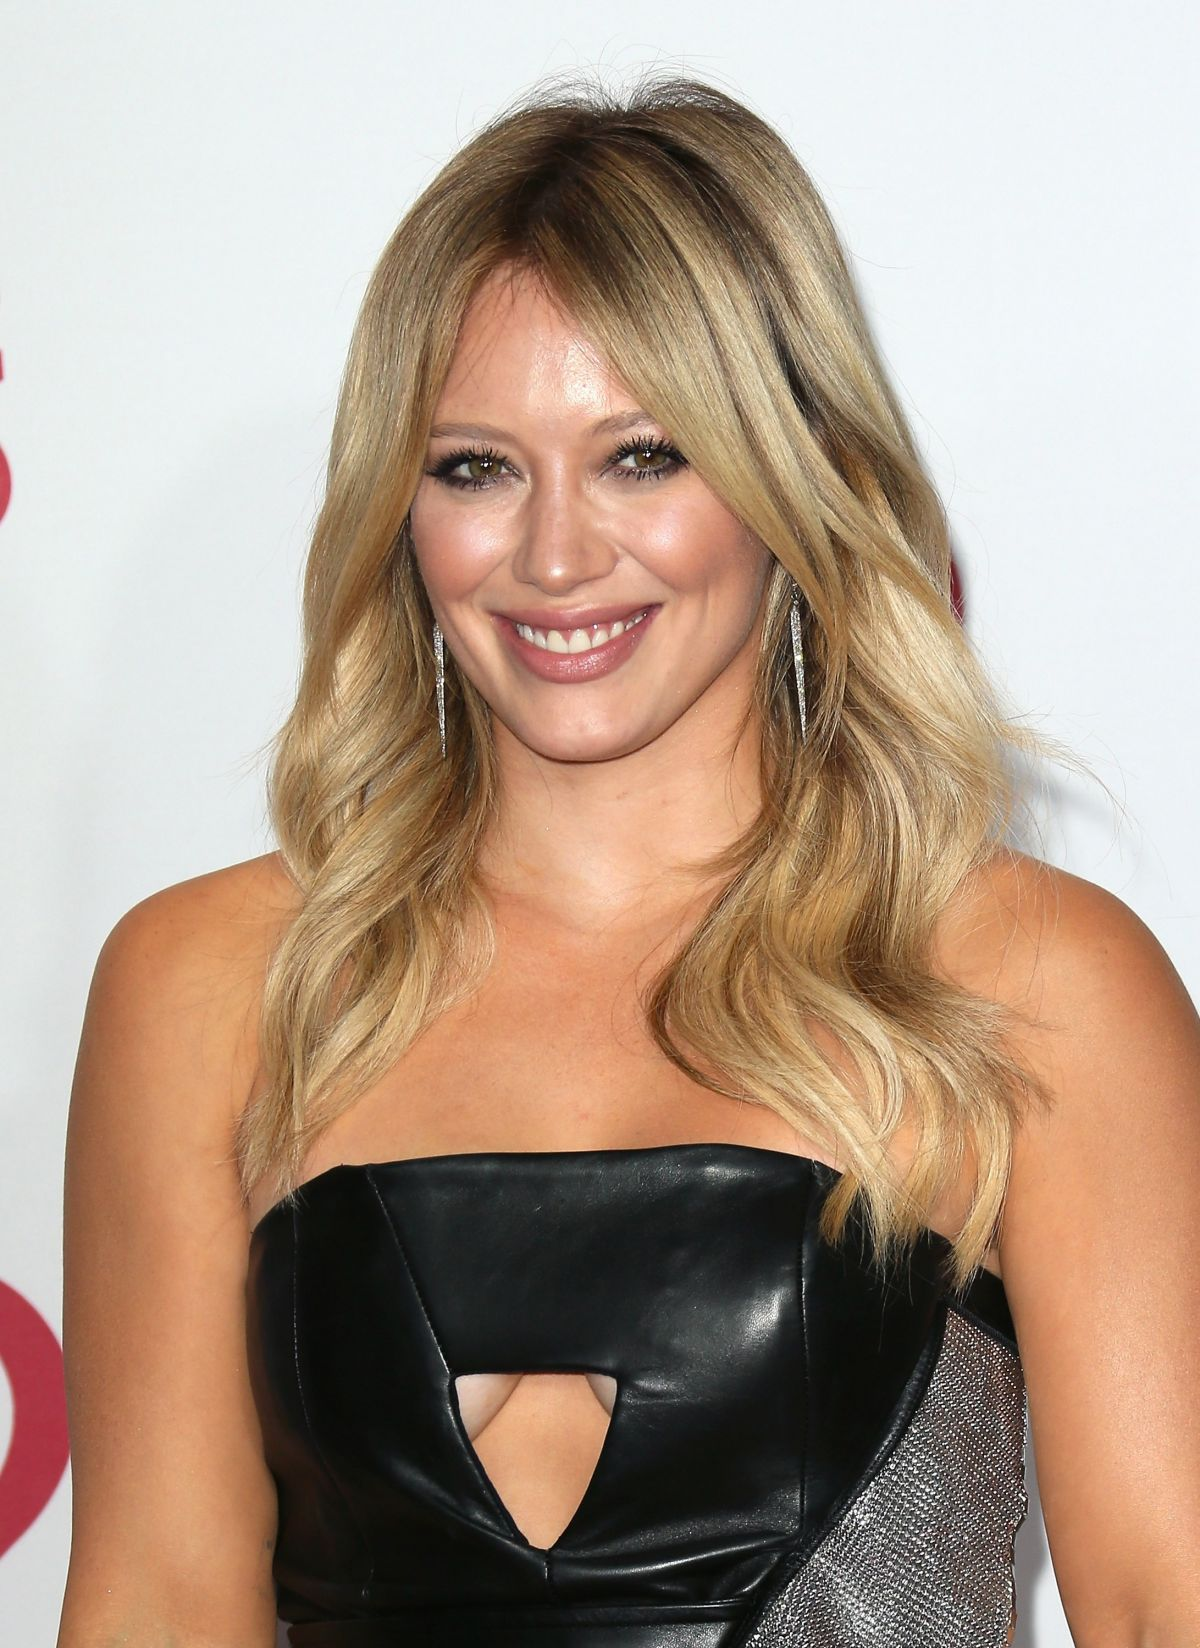 HILARY DUFF at 2014 Iheartradio Music Festival in Las Vegas ...